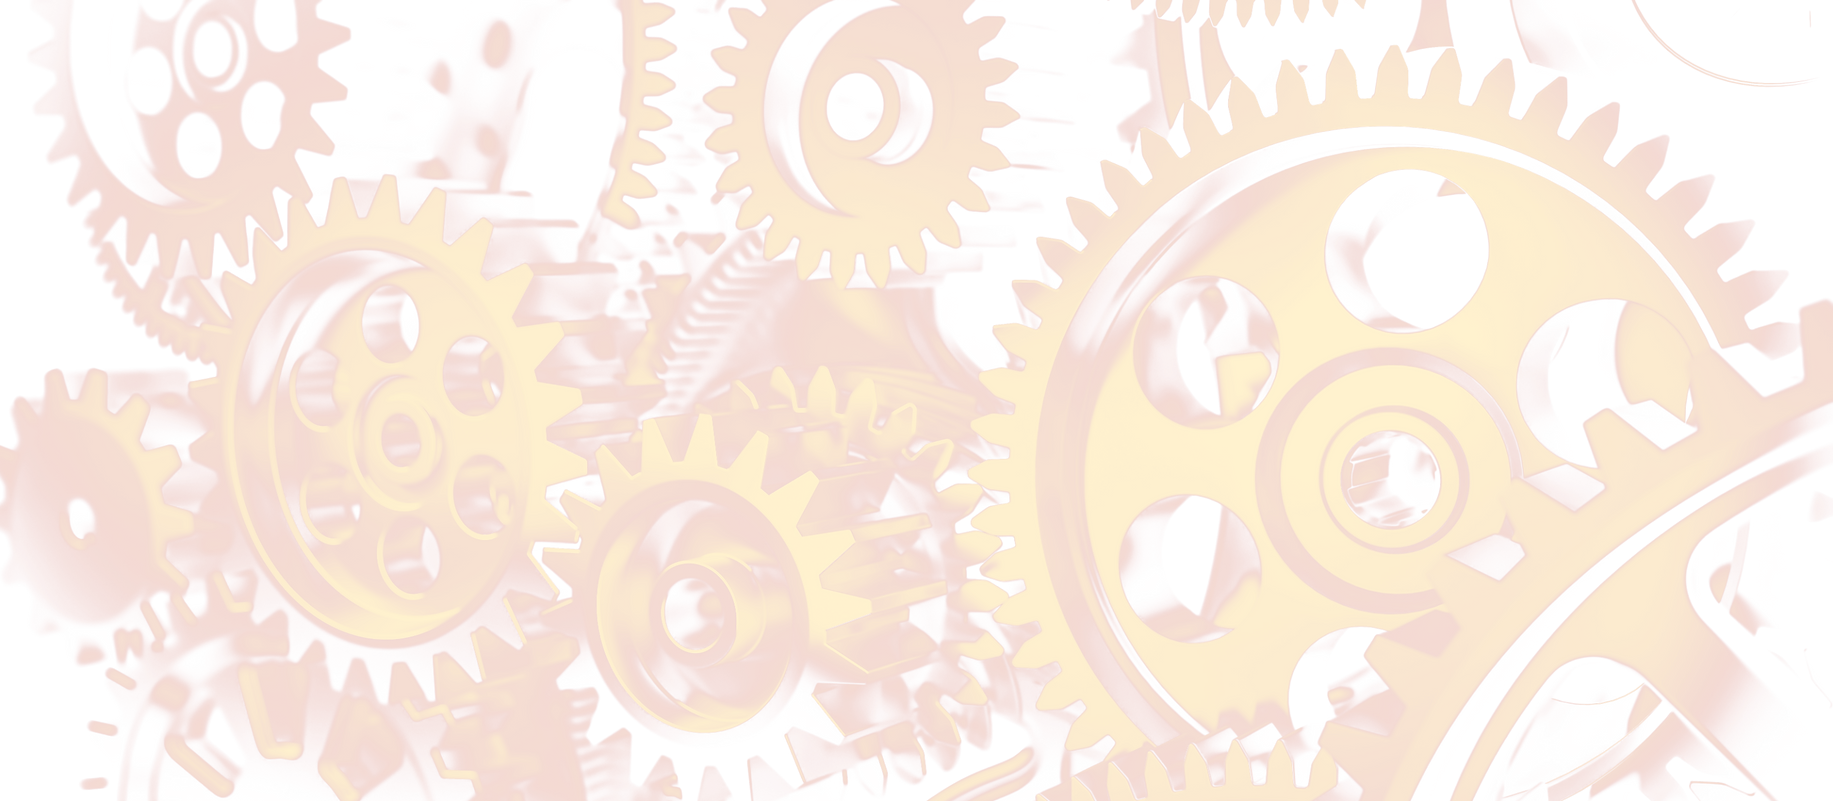 bigstock-Mechanism-gears-and-cogs-at-w-3